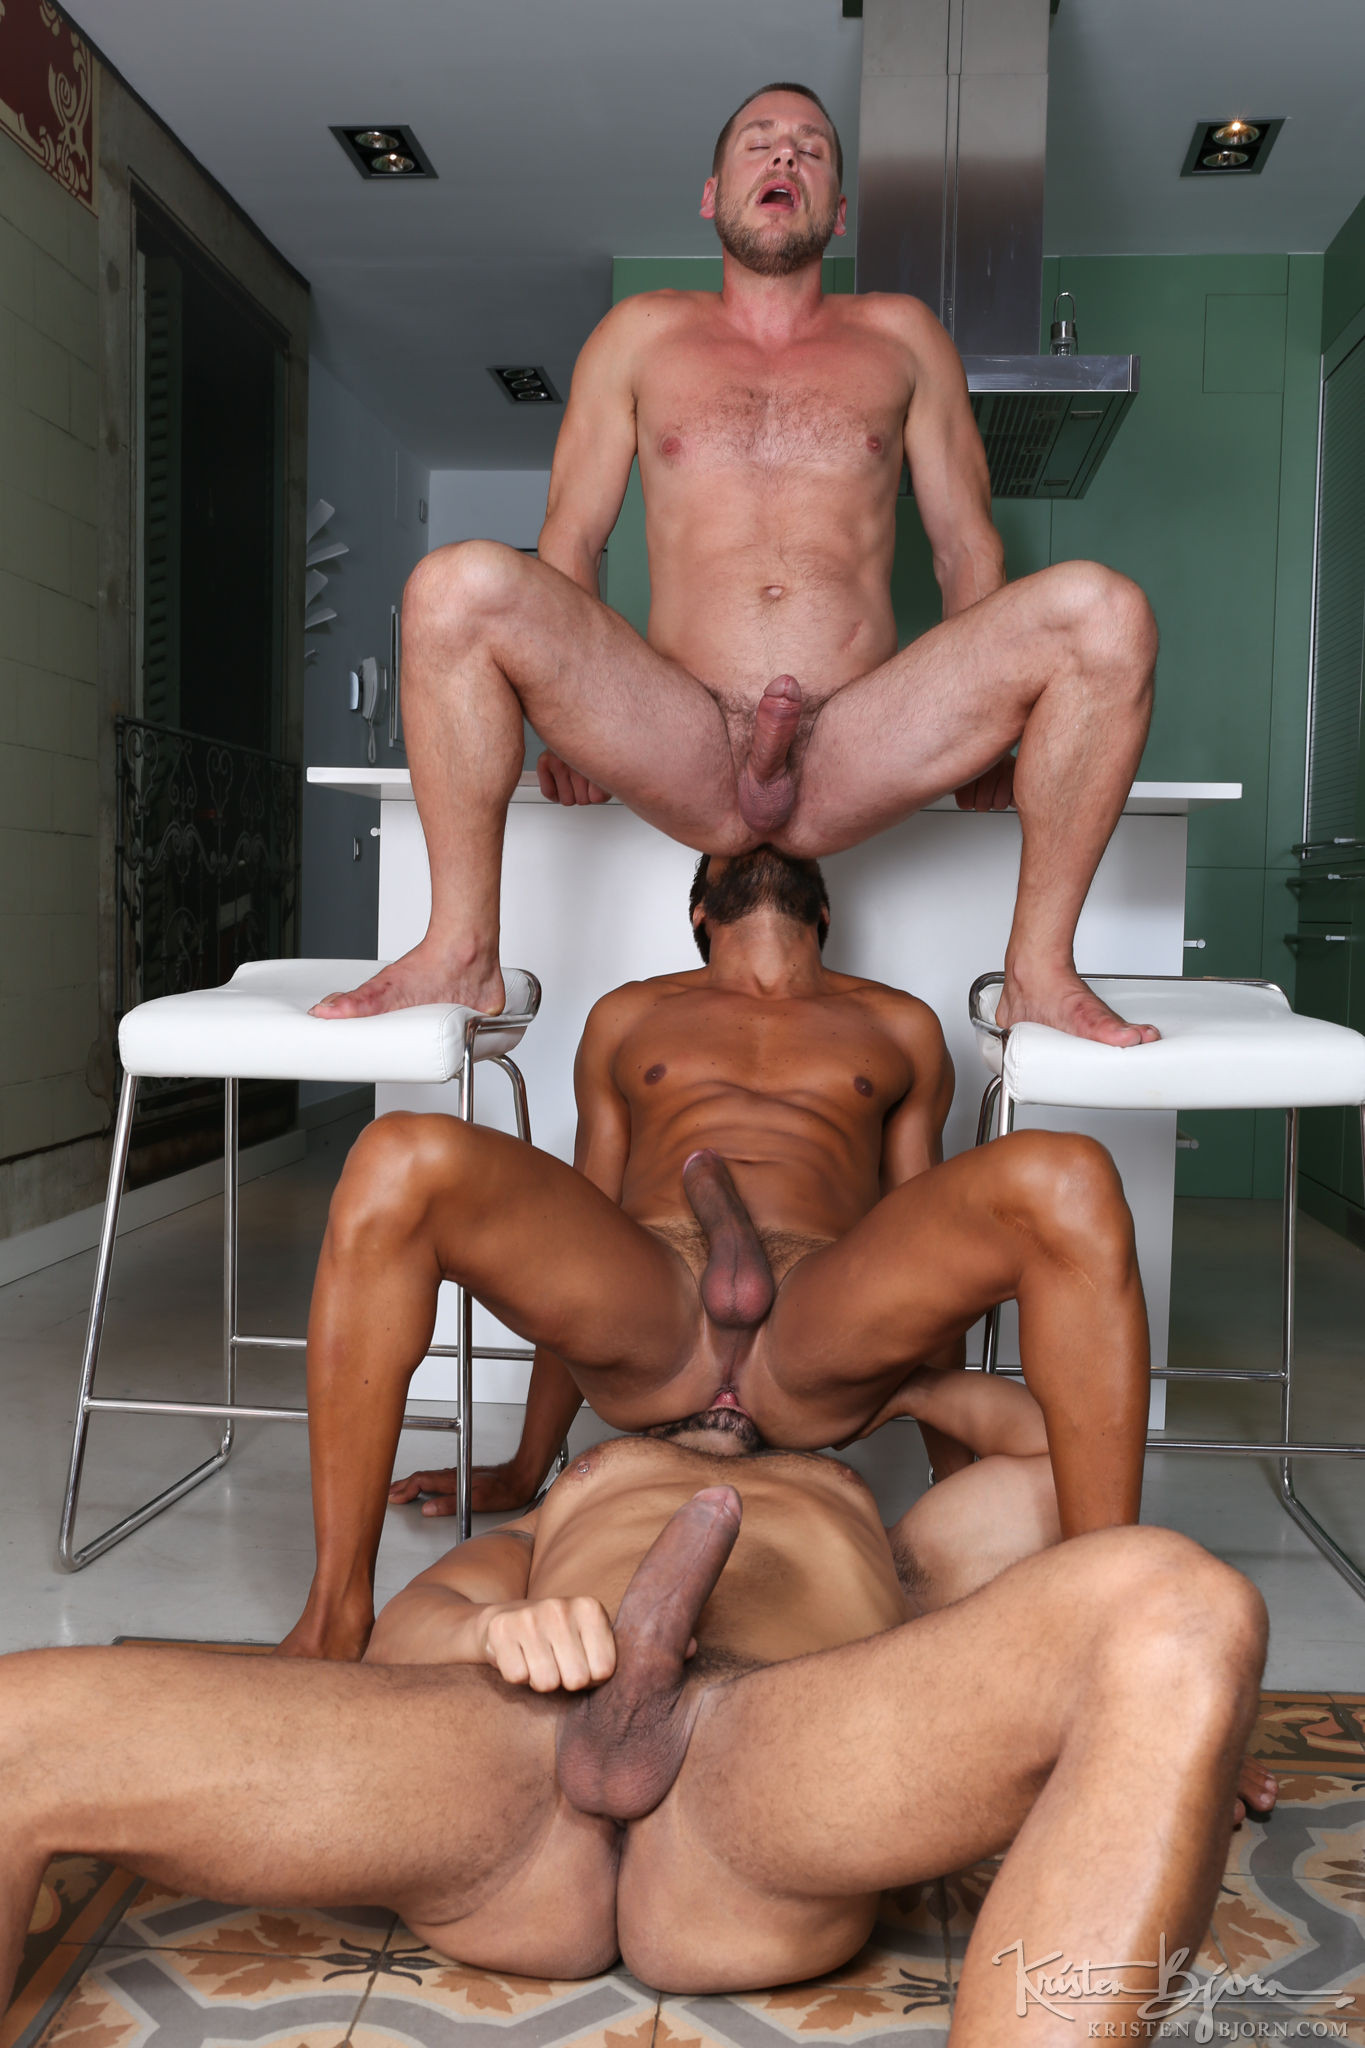 Xxx gay bareback tgp we observe from above